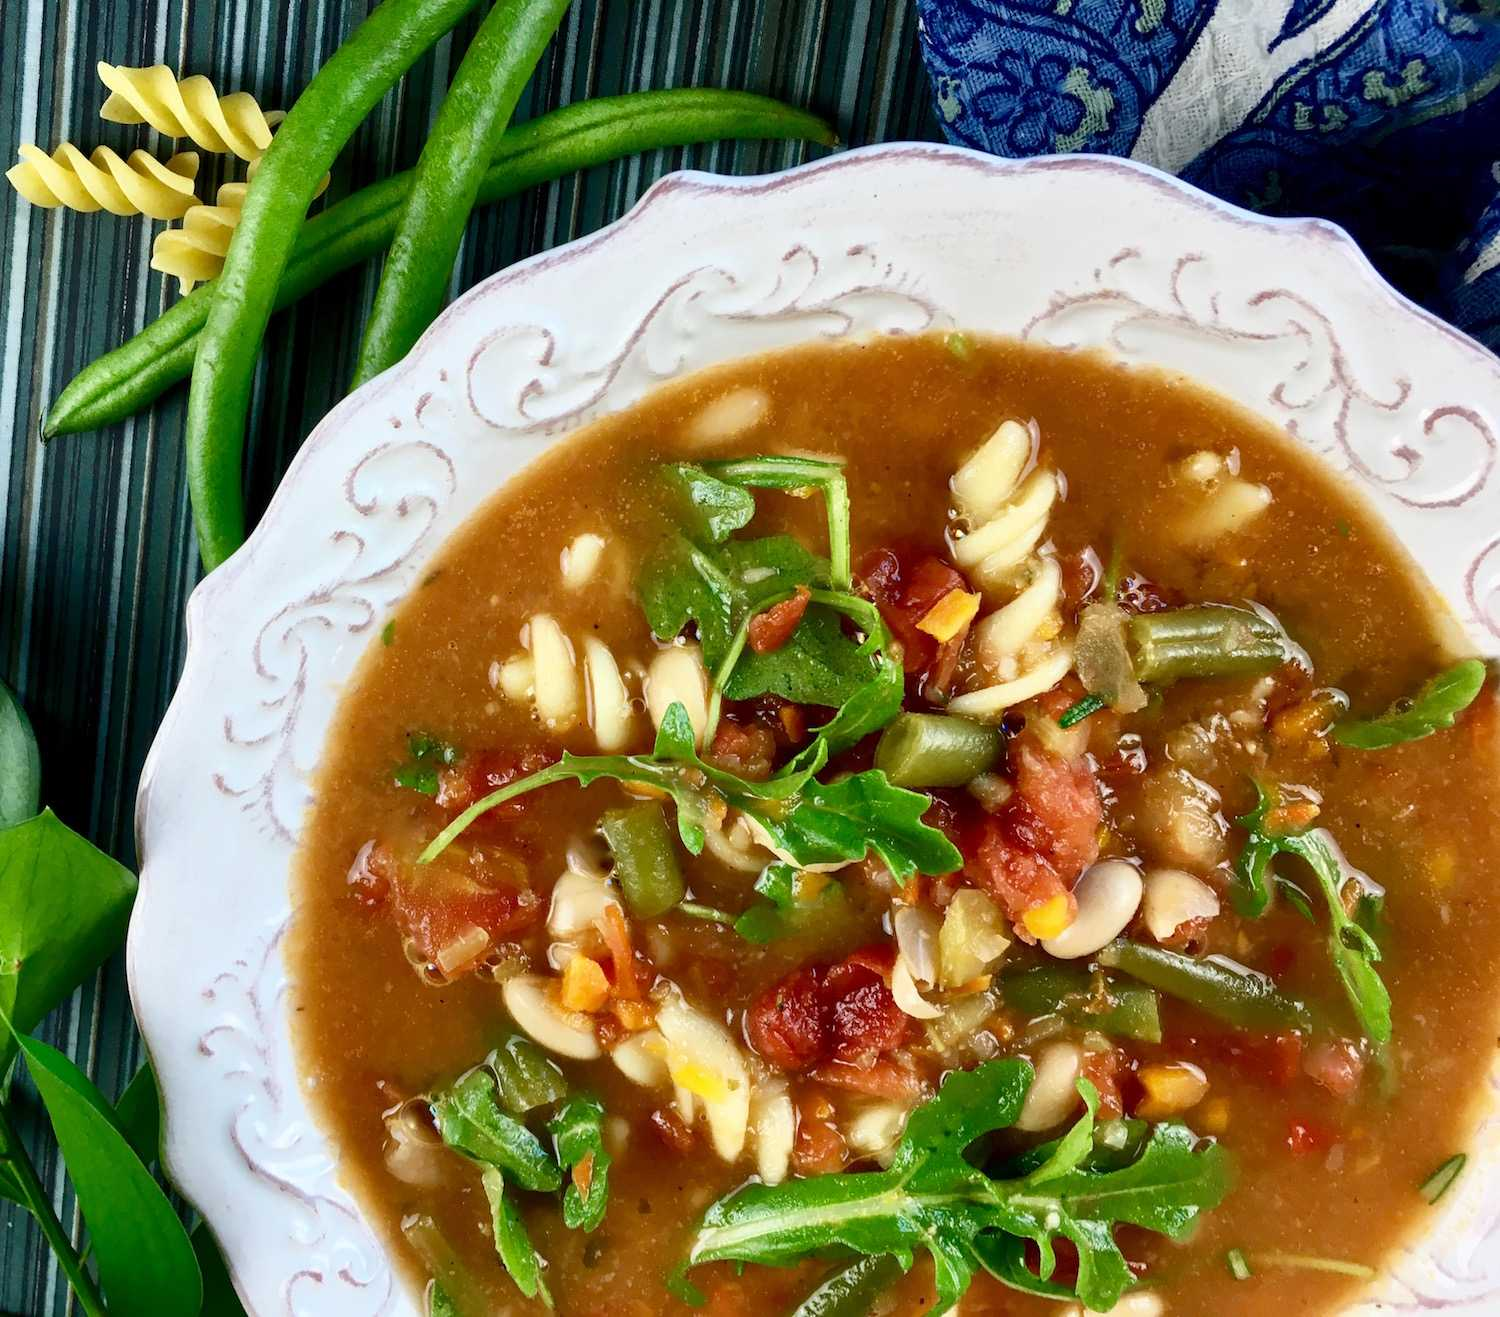 Best Minestrone Soup Recipe for myWW